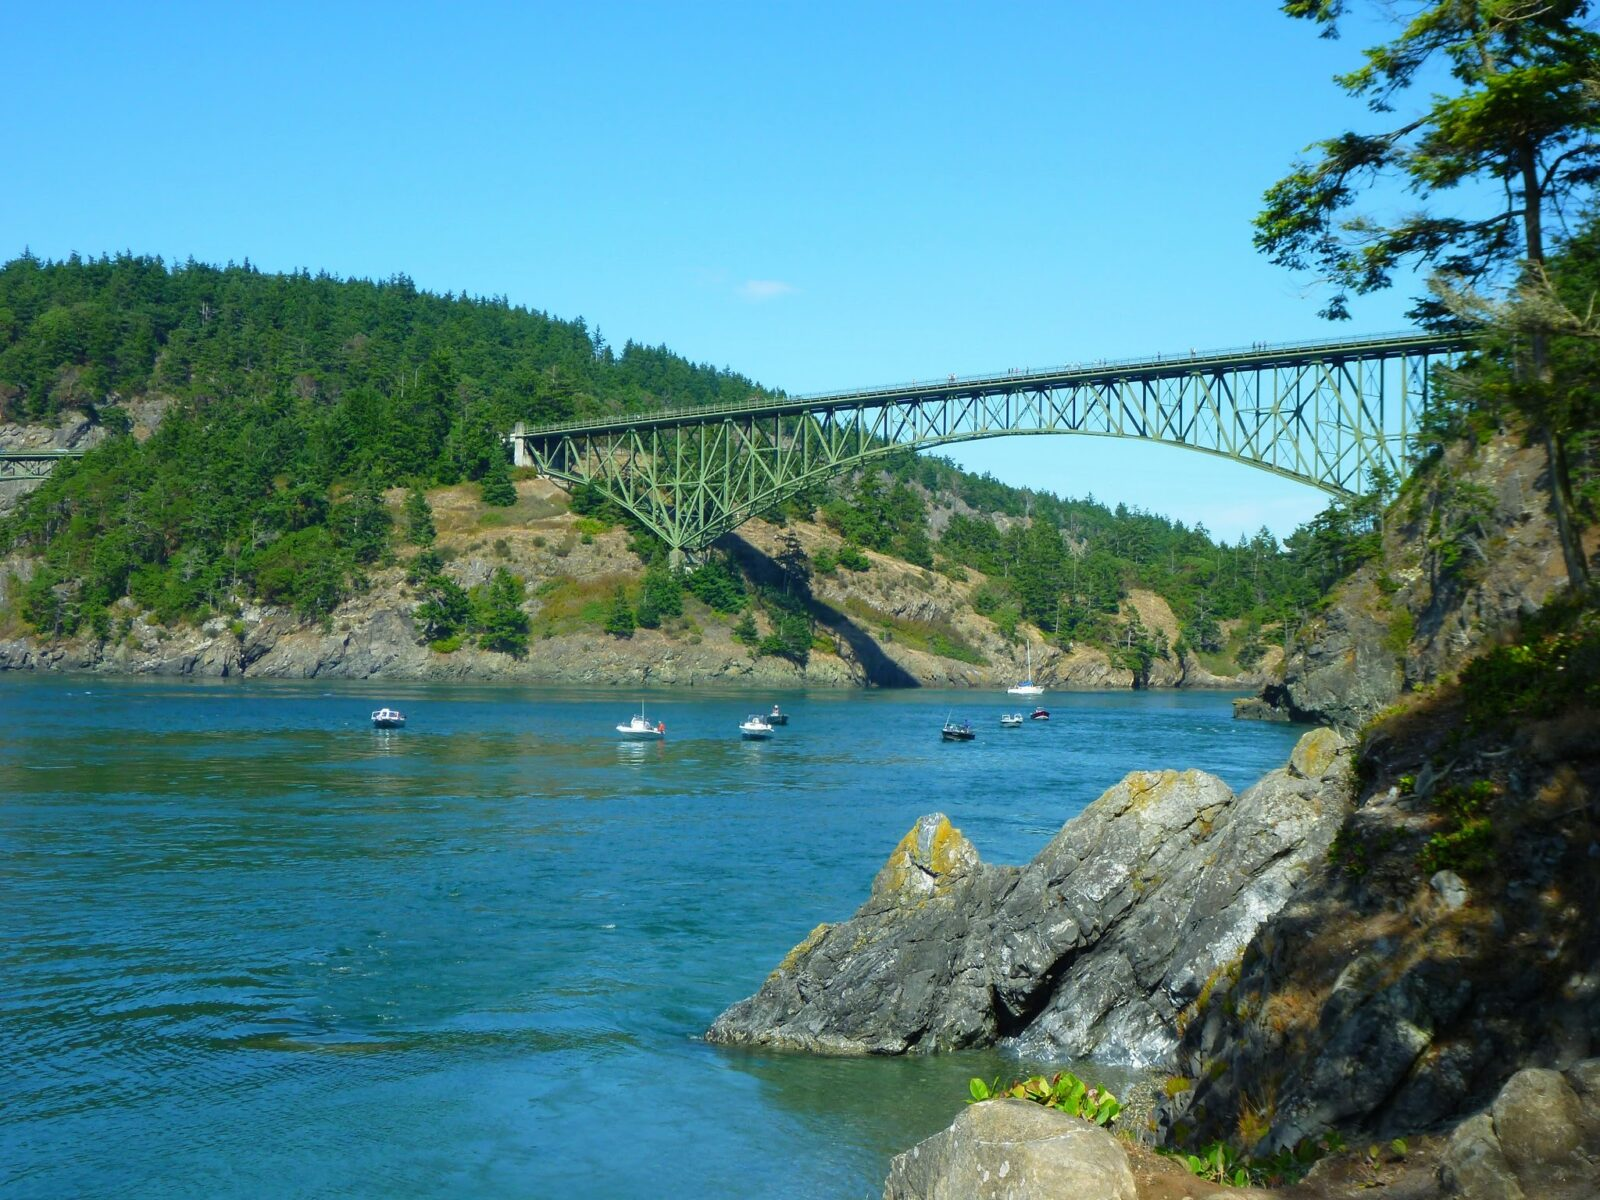 A green steel bridge is high above the water between two rocky and forested hills on each side of a narrow passage. There are a few fishing boats and one sailboat in the water under the bridge